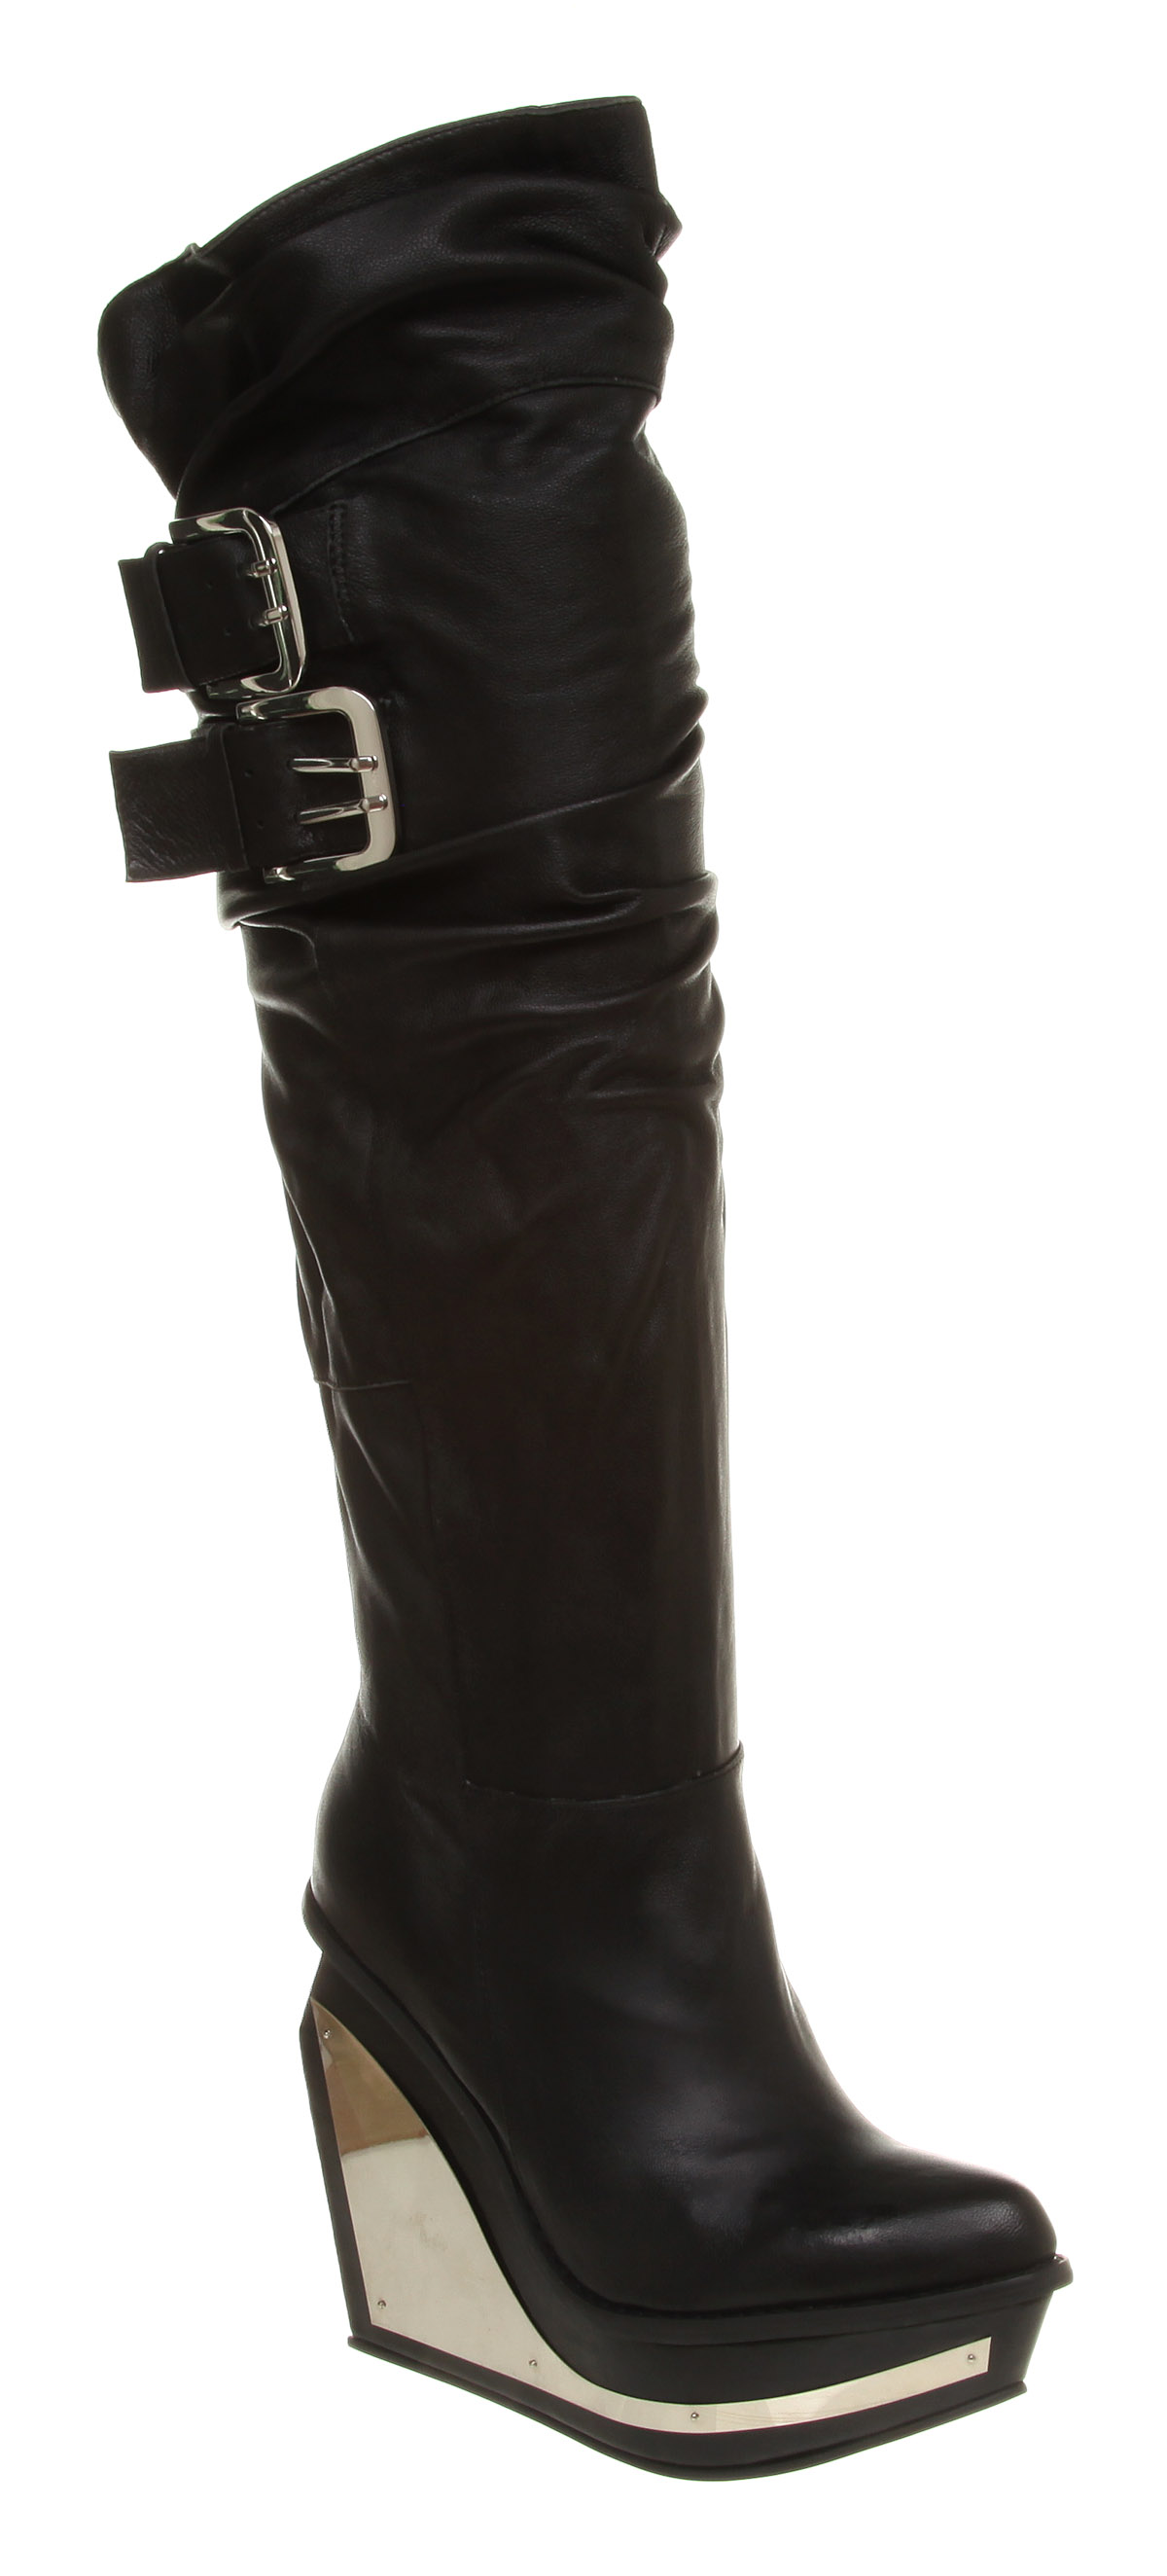 Crazy wedge designer vegan knee high boots